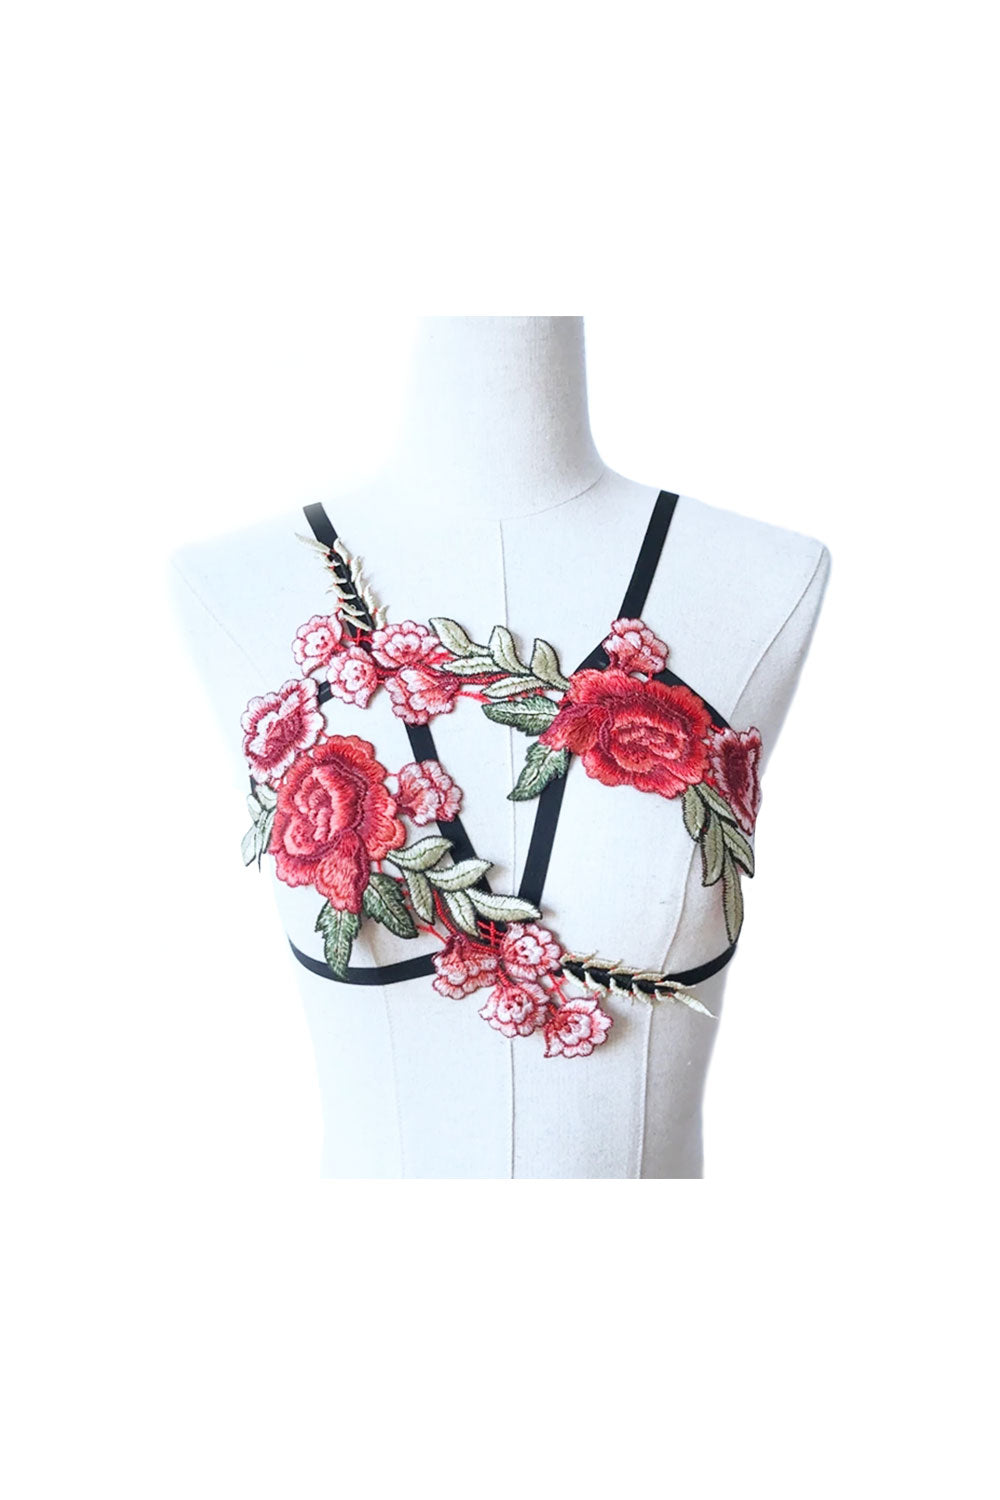 Top Harness with flowers